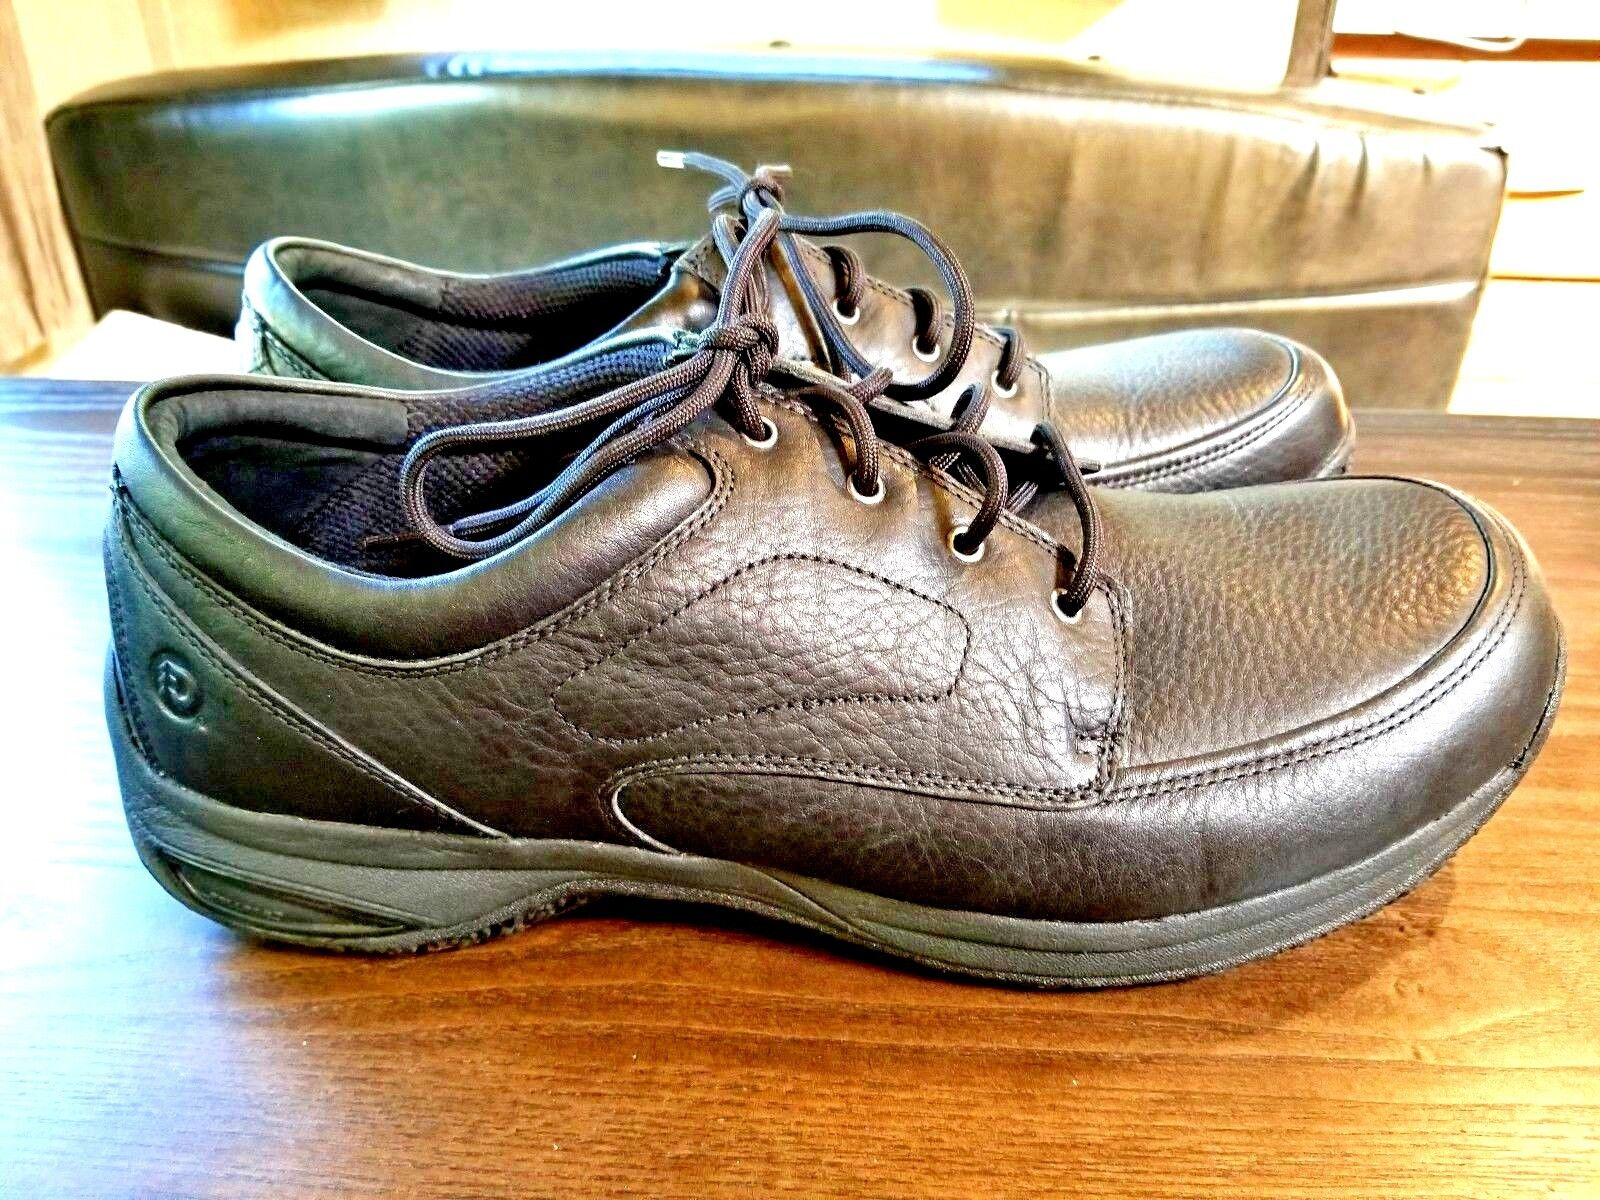 3b9542632 Dunham Leather Industrial Size 16 2E Black Work Work Work shoes NWOT 8c139d